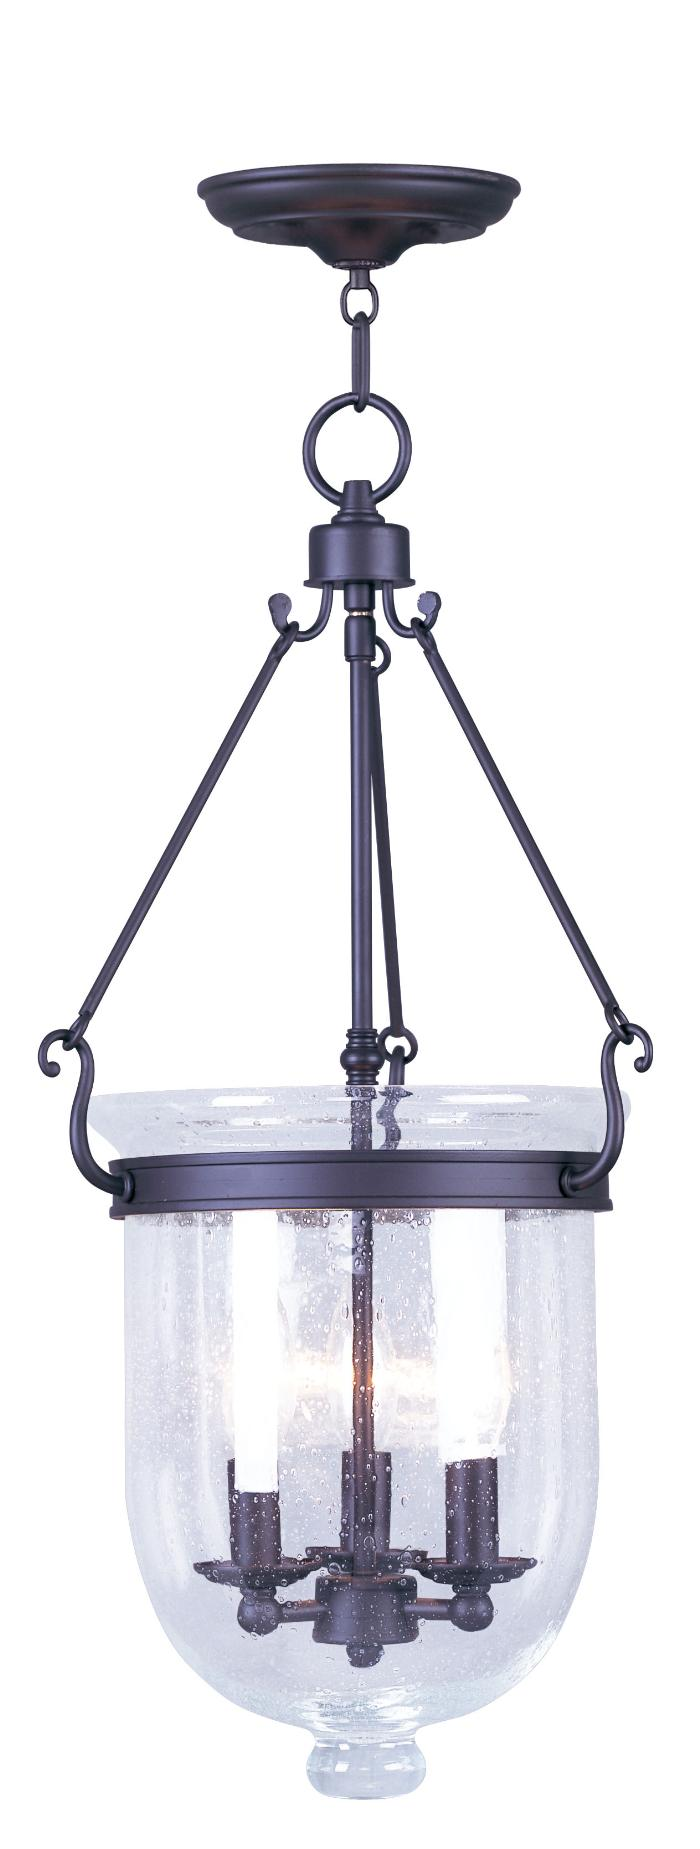 Elegant Livex Lighting 5084 07 Pendants From The Jefferson Collection For Home Lighting Ideas